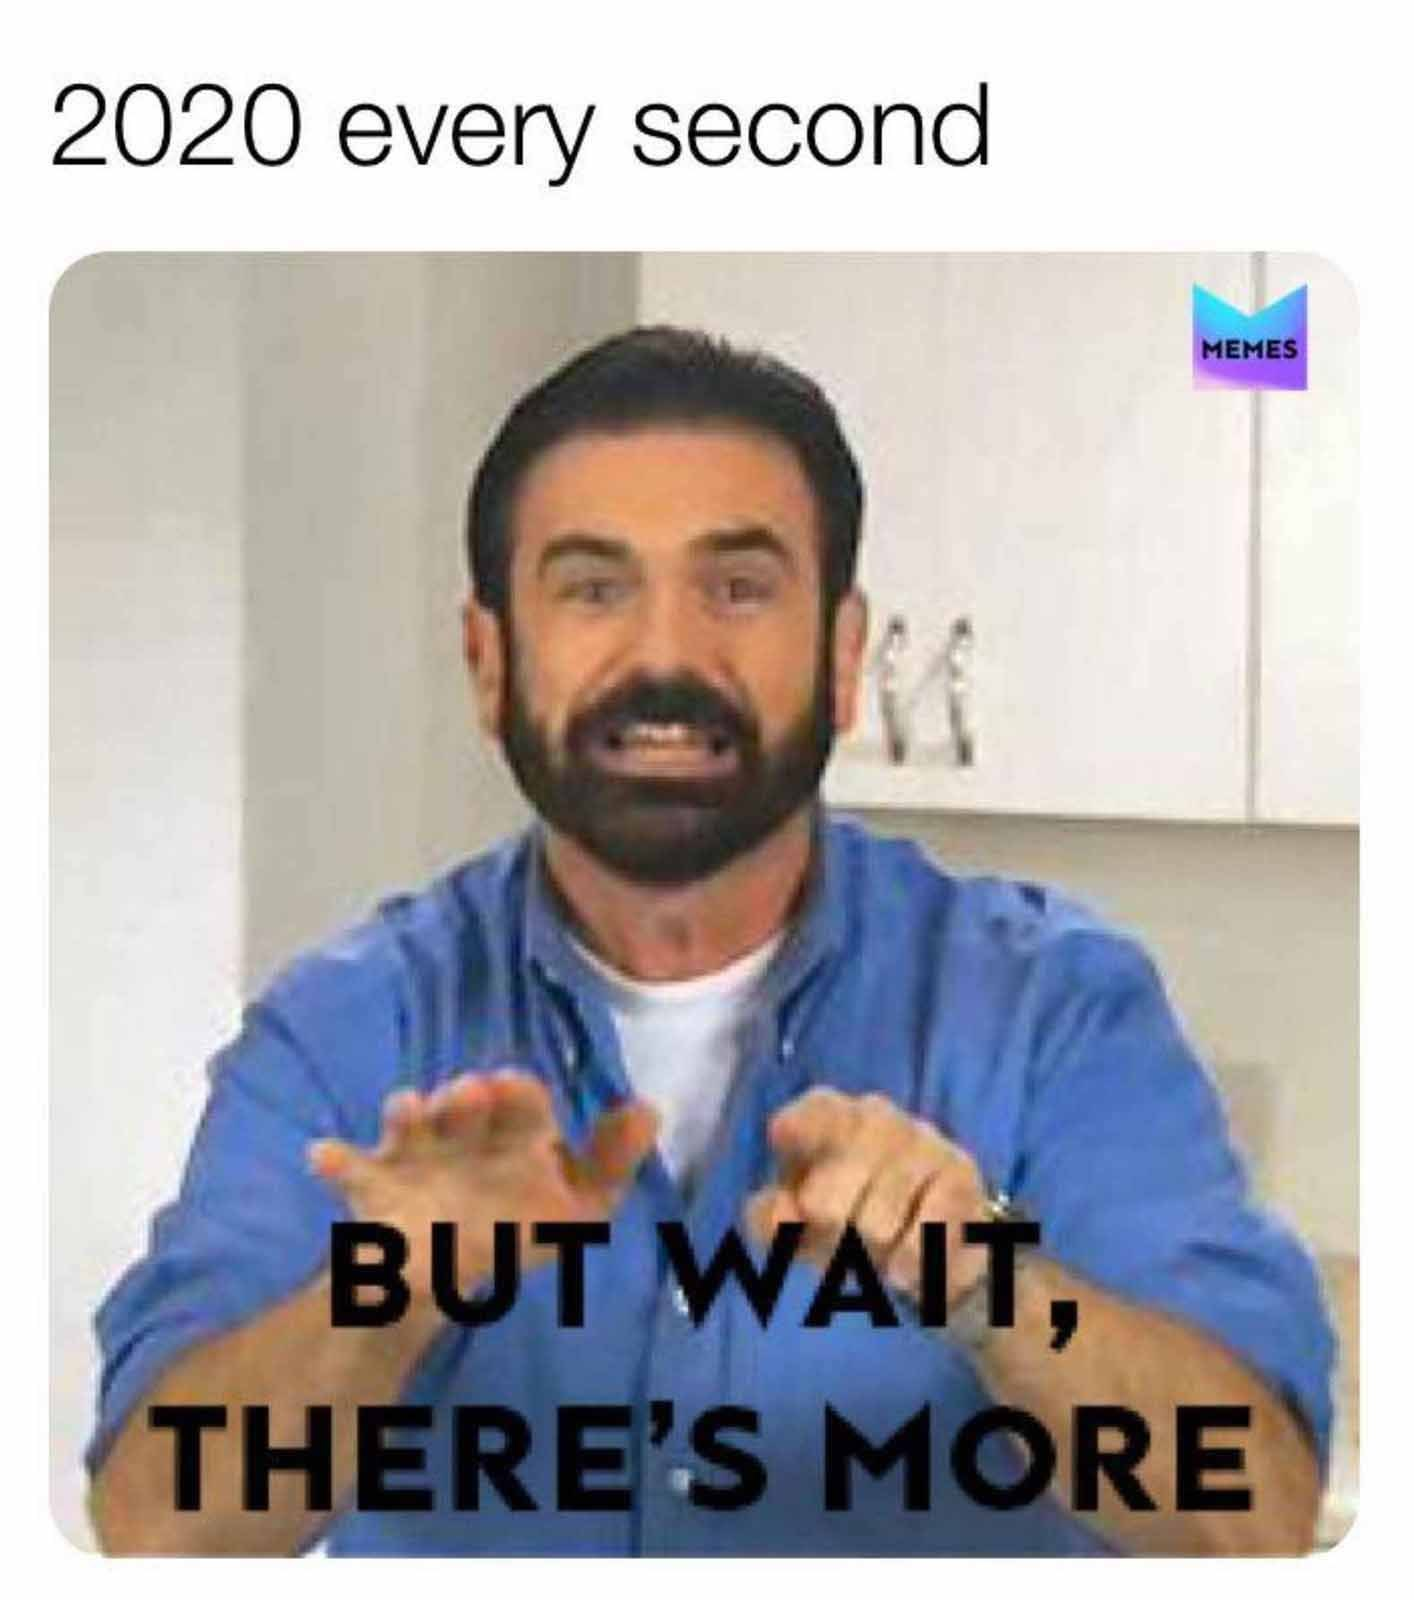 What now 2020? - meme